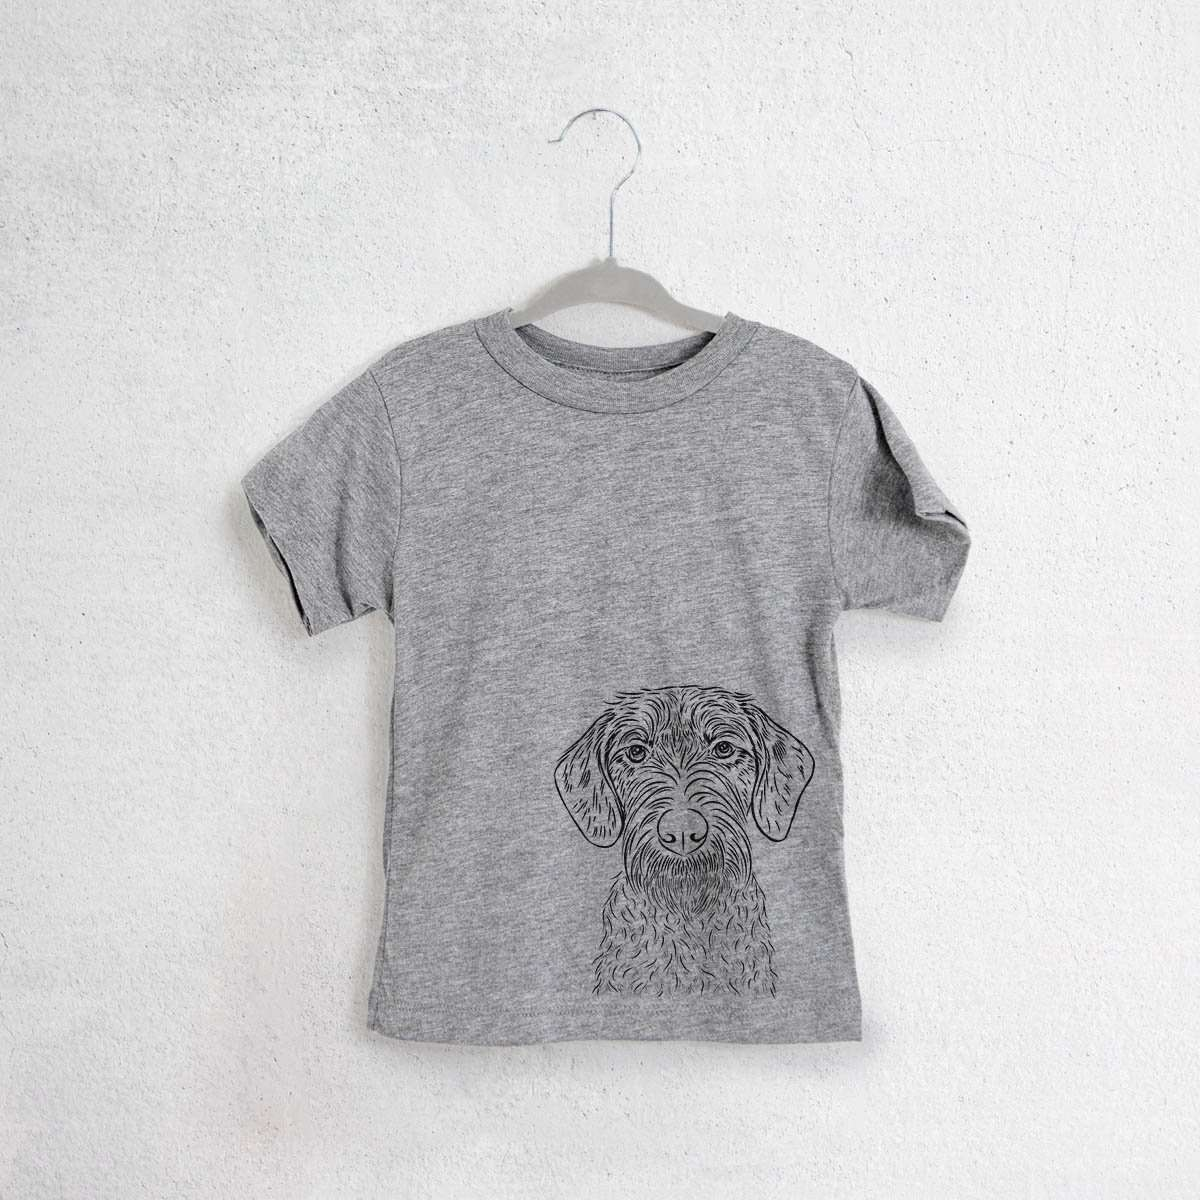 Gus the German Wirehaired Pointer - Kids/Youth/Toddler Shirt